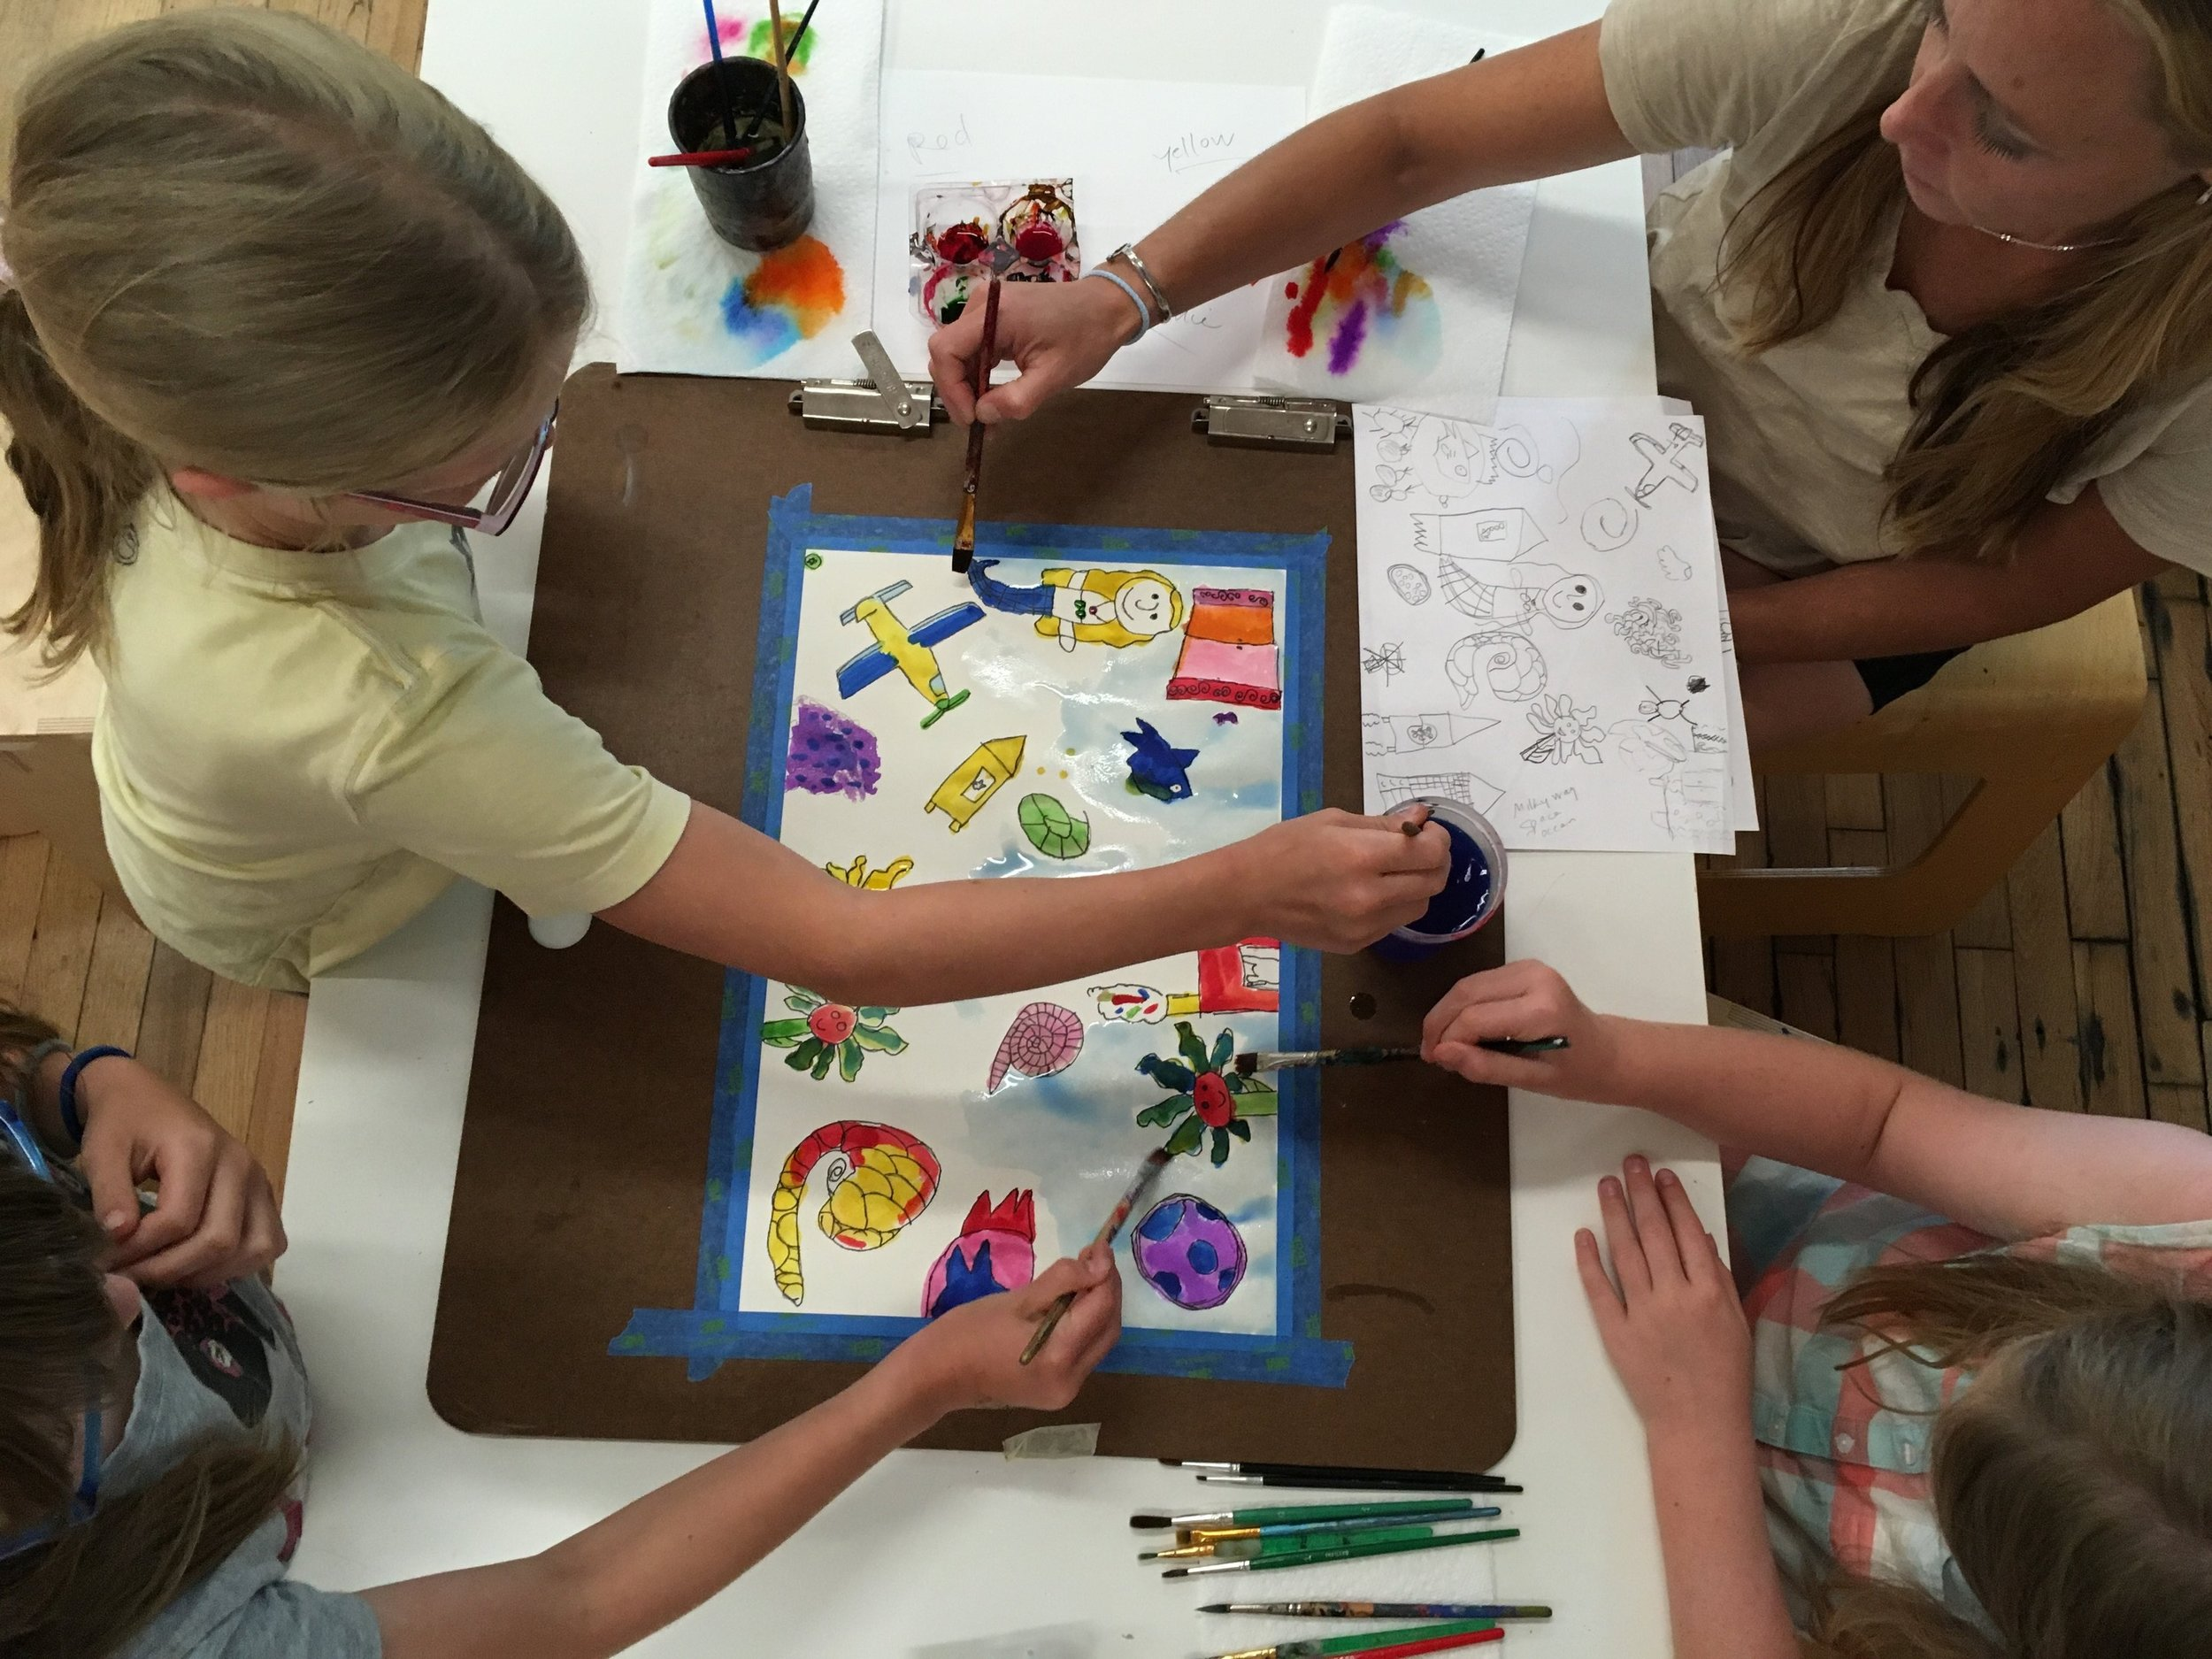 During this fun family art session, we created both individual and collaborative works!